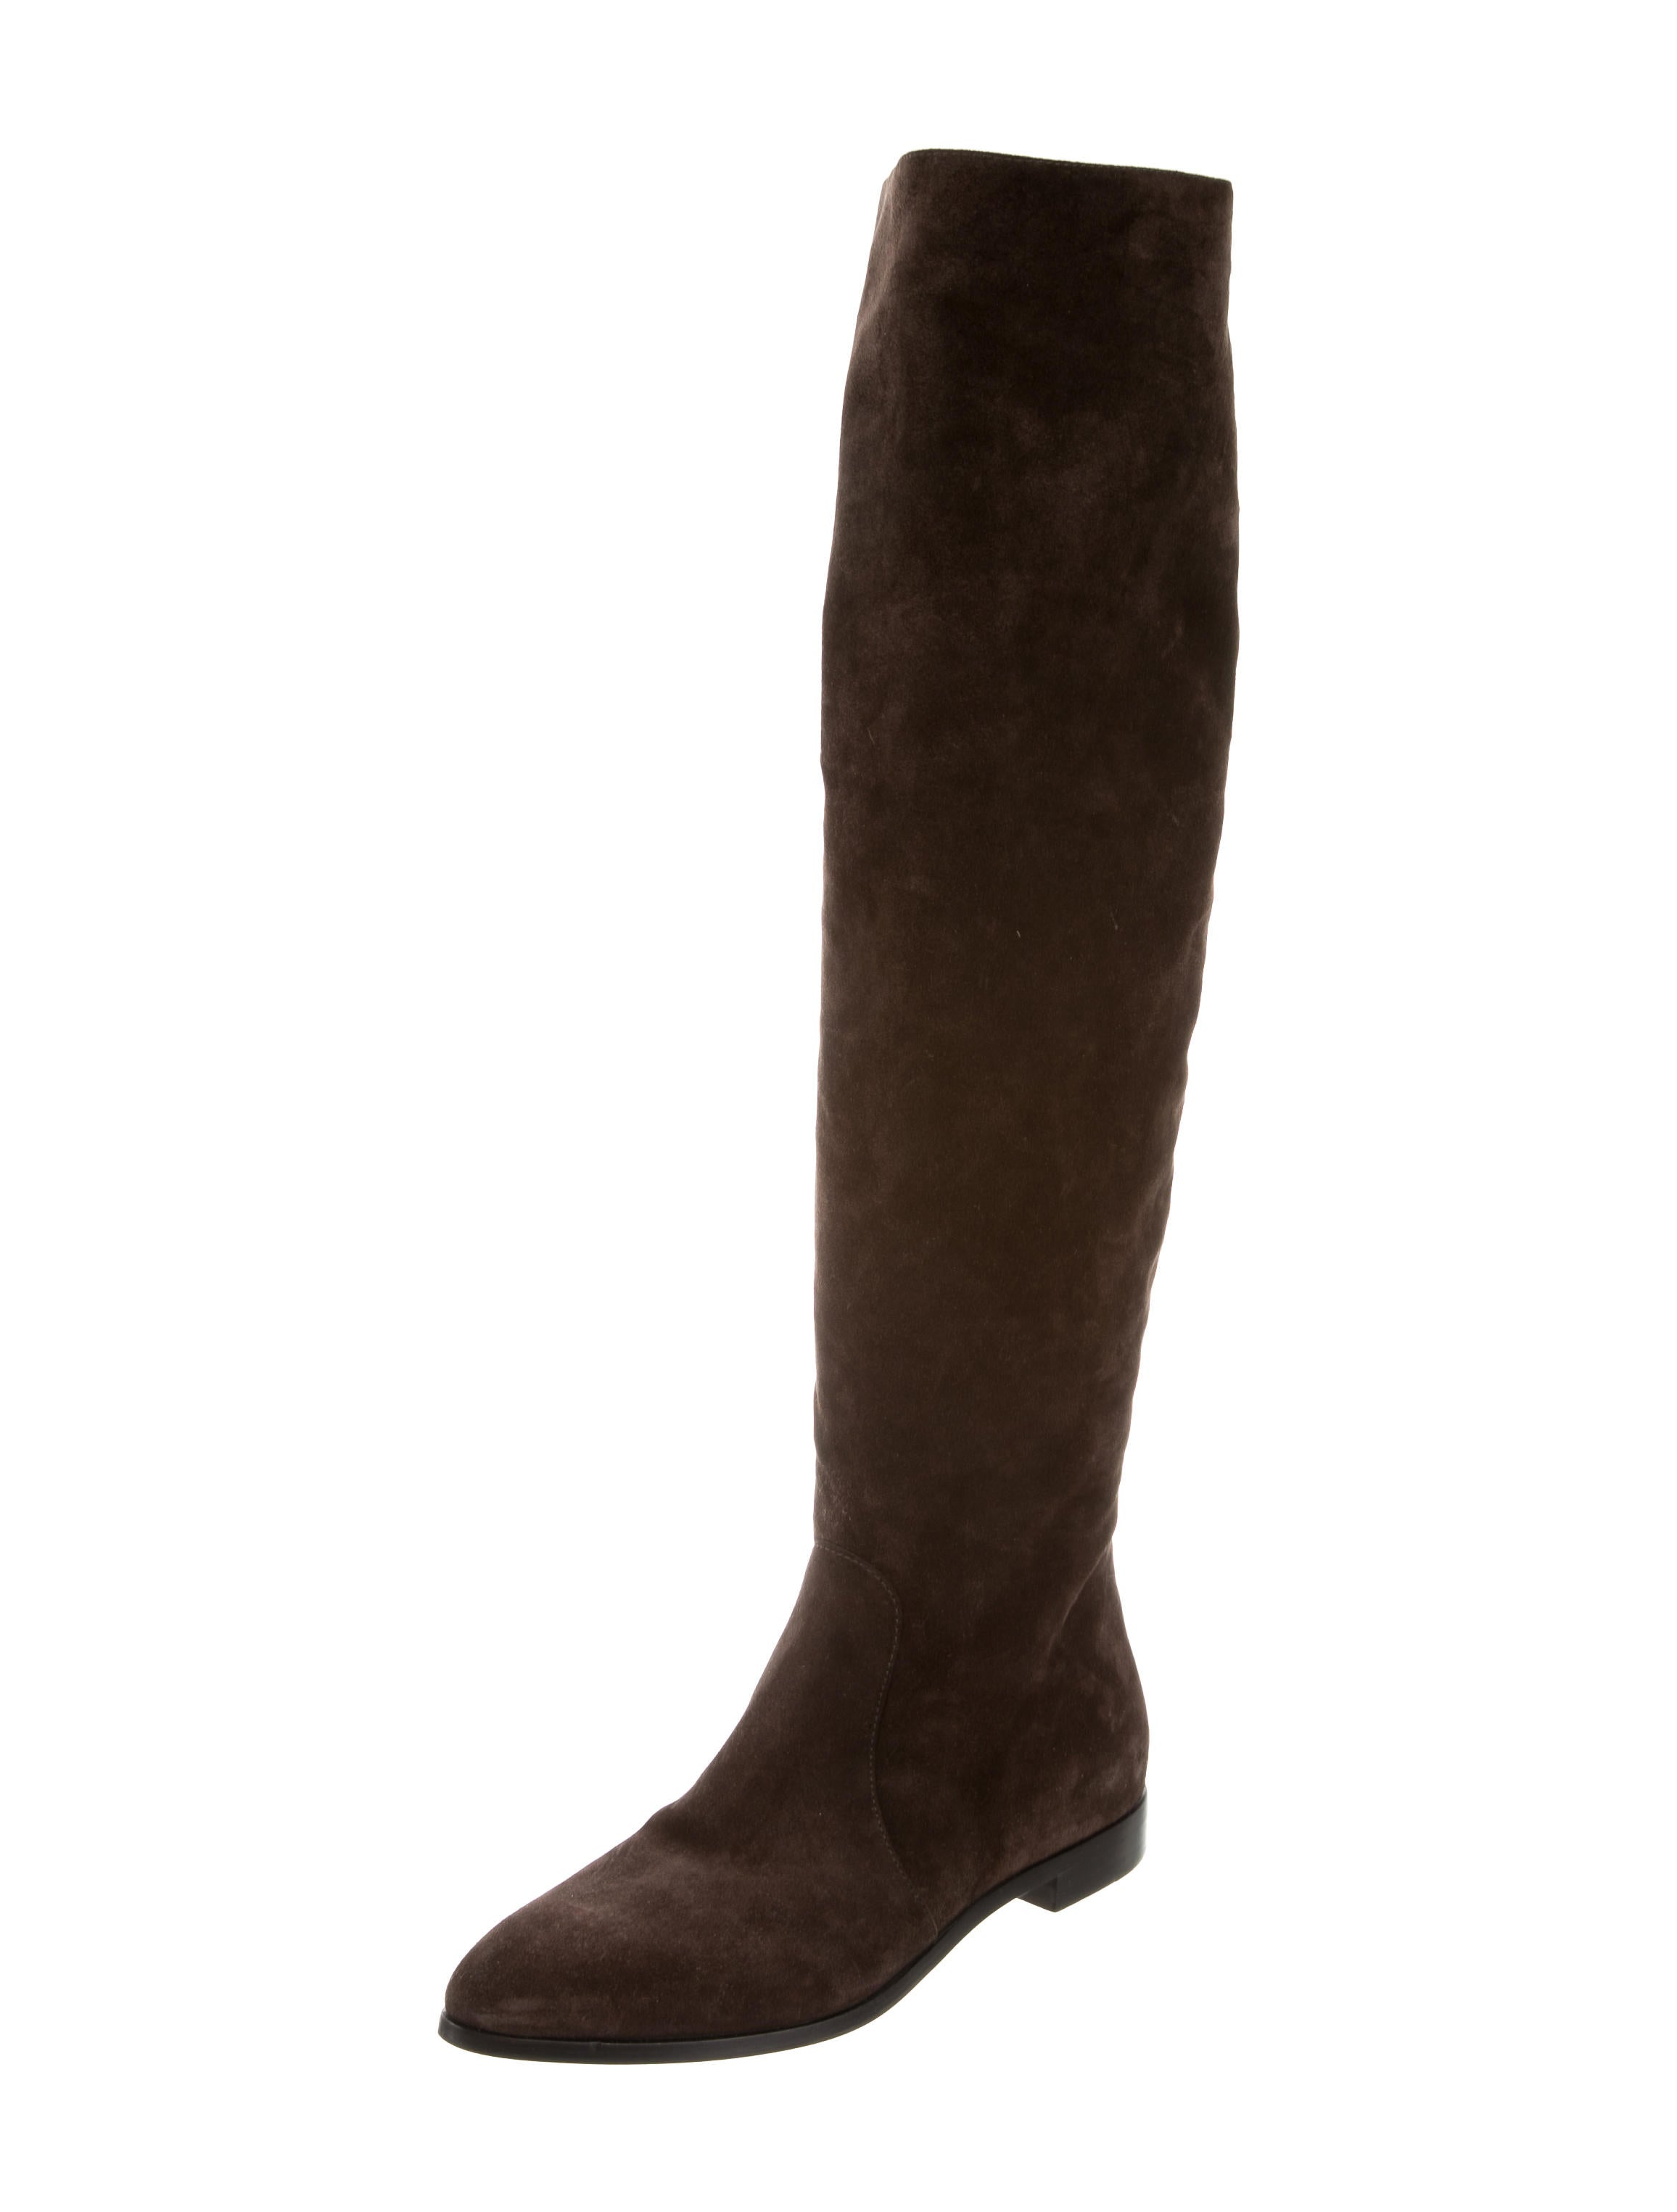 prada suede the knee boots shoes pra156719 the